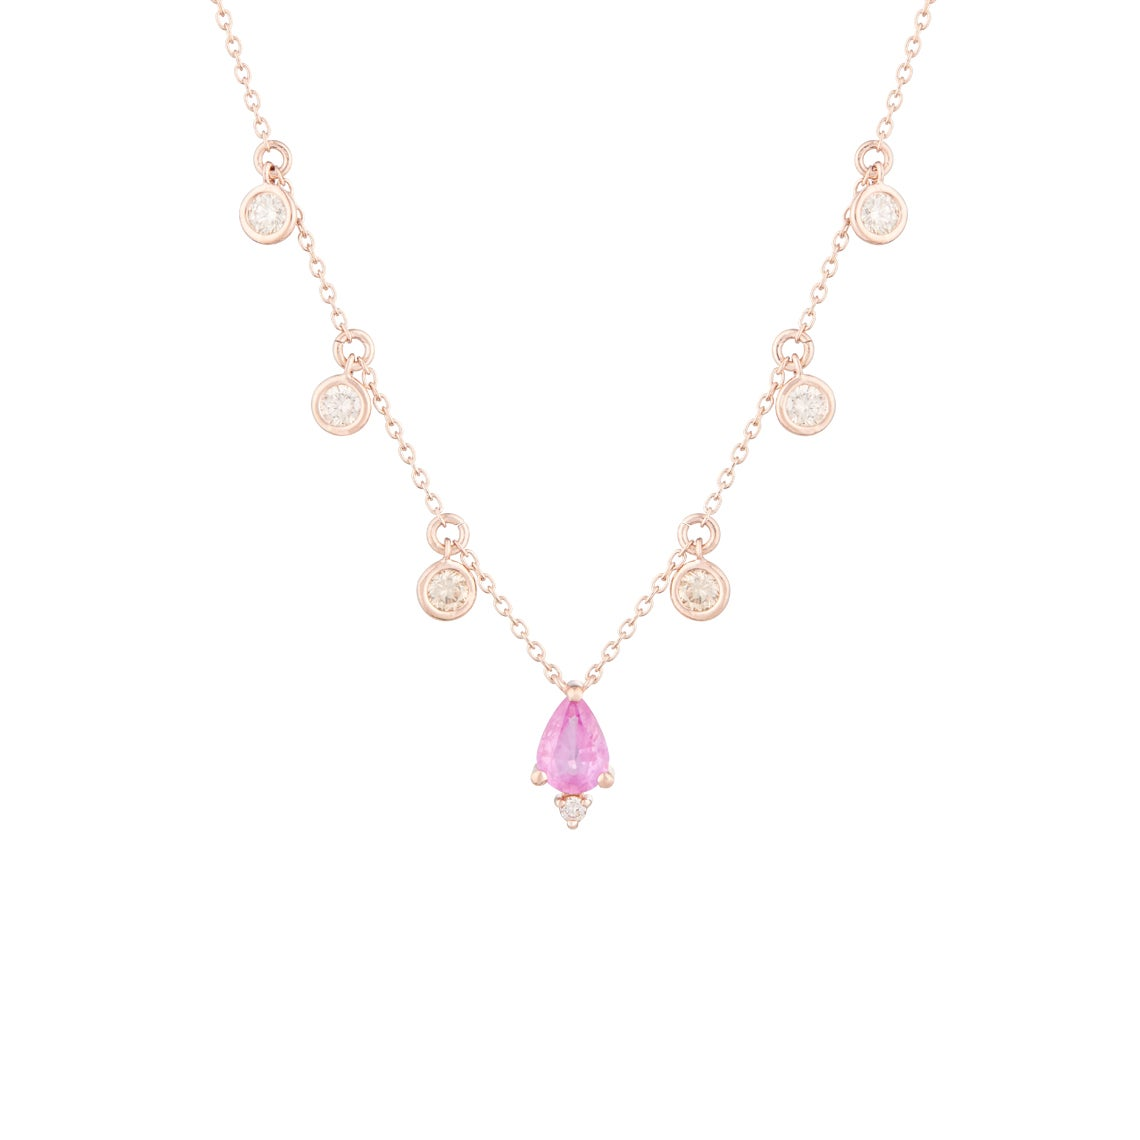 Image of Victoria Pink Sapphire Statement Necklace